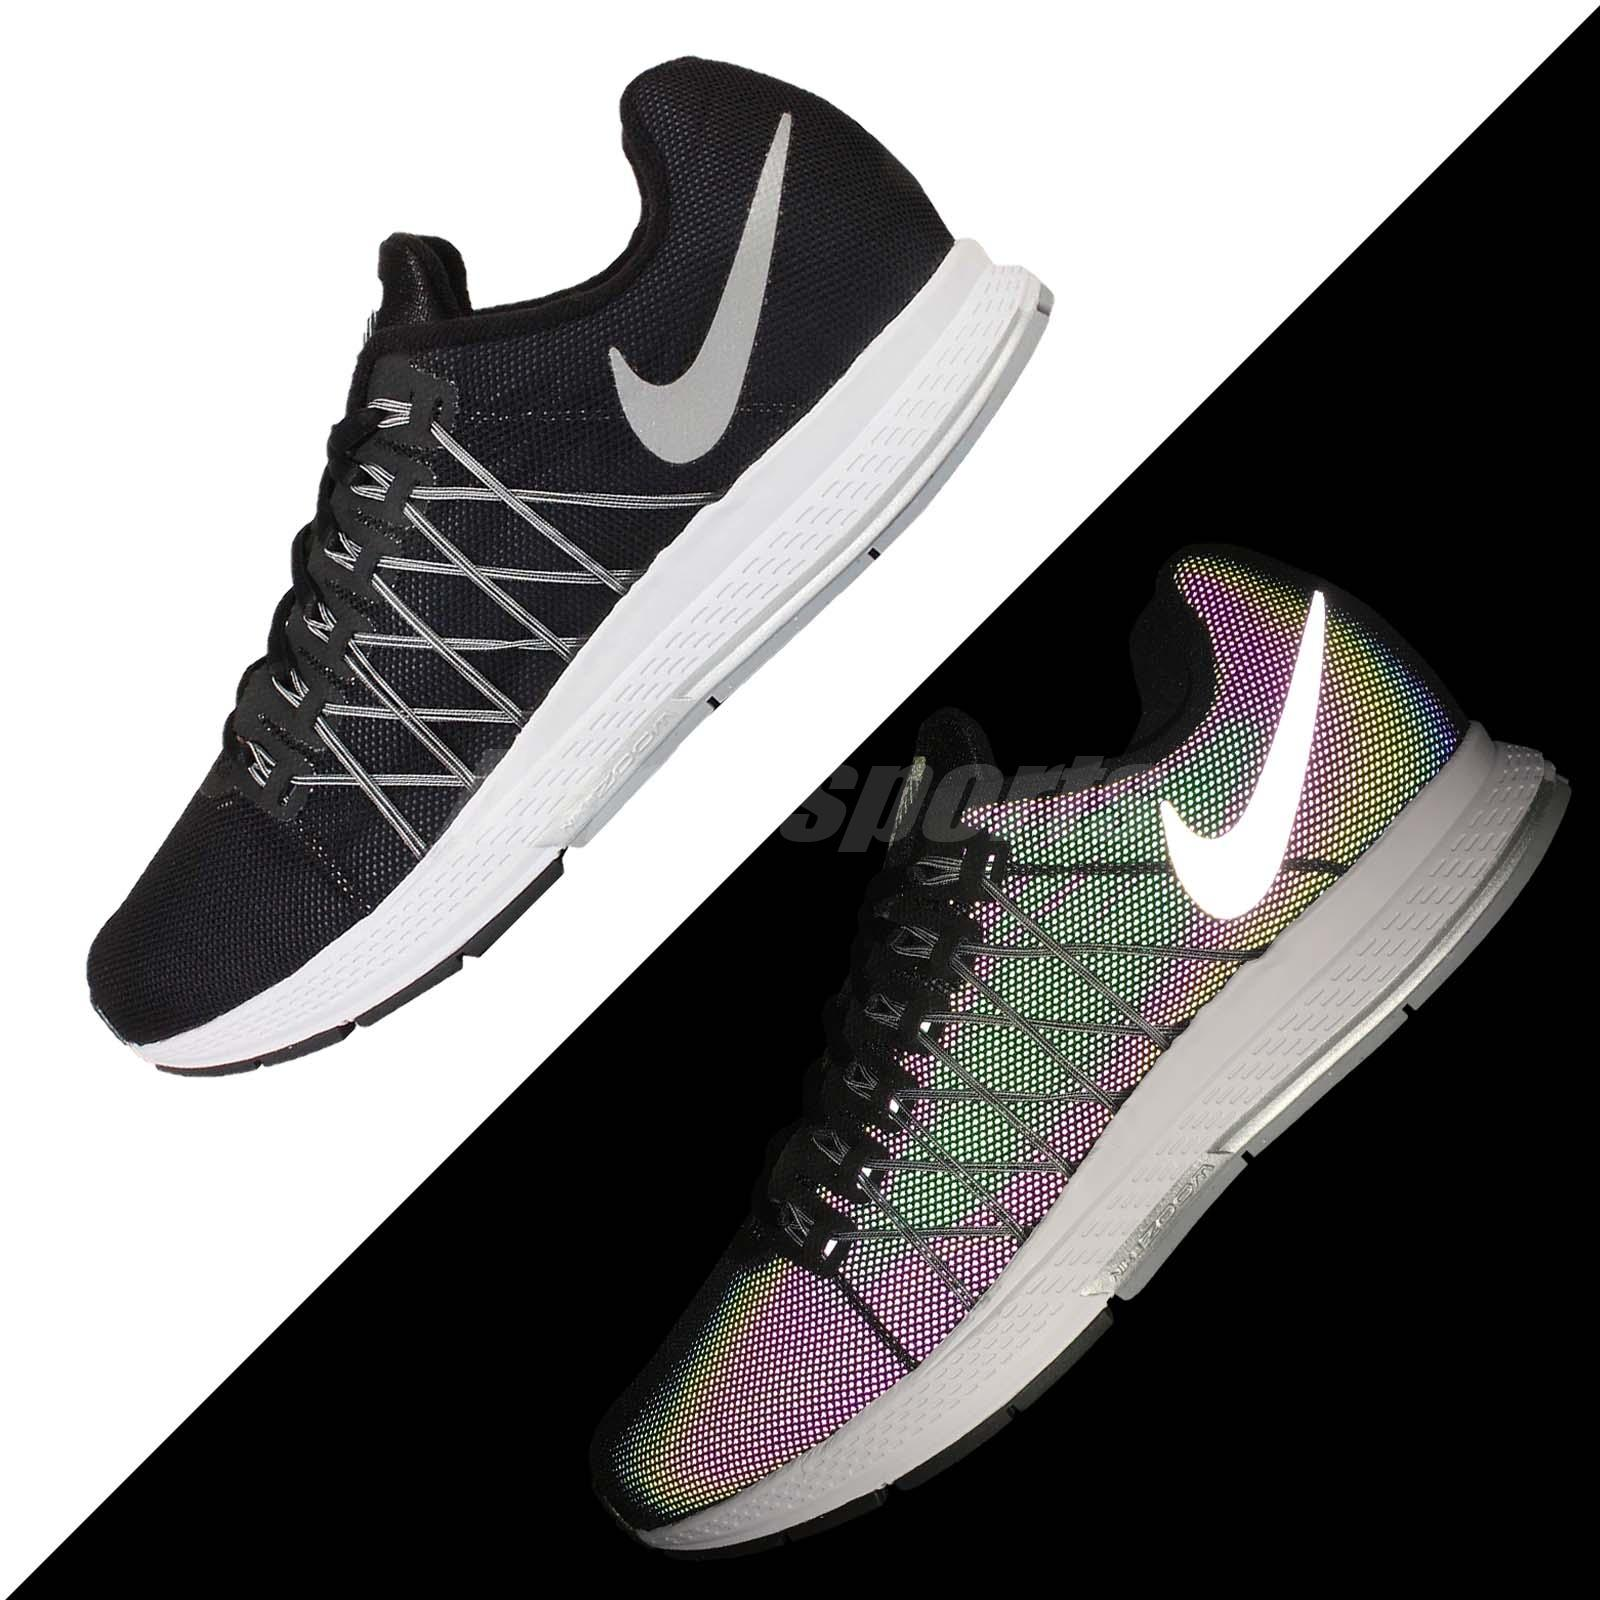 nike air zoom pegasus 32 flash pack black white mens running shoes 806576 001 ebay. Black Bedroom Furniture Sets. Home Design Ideas